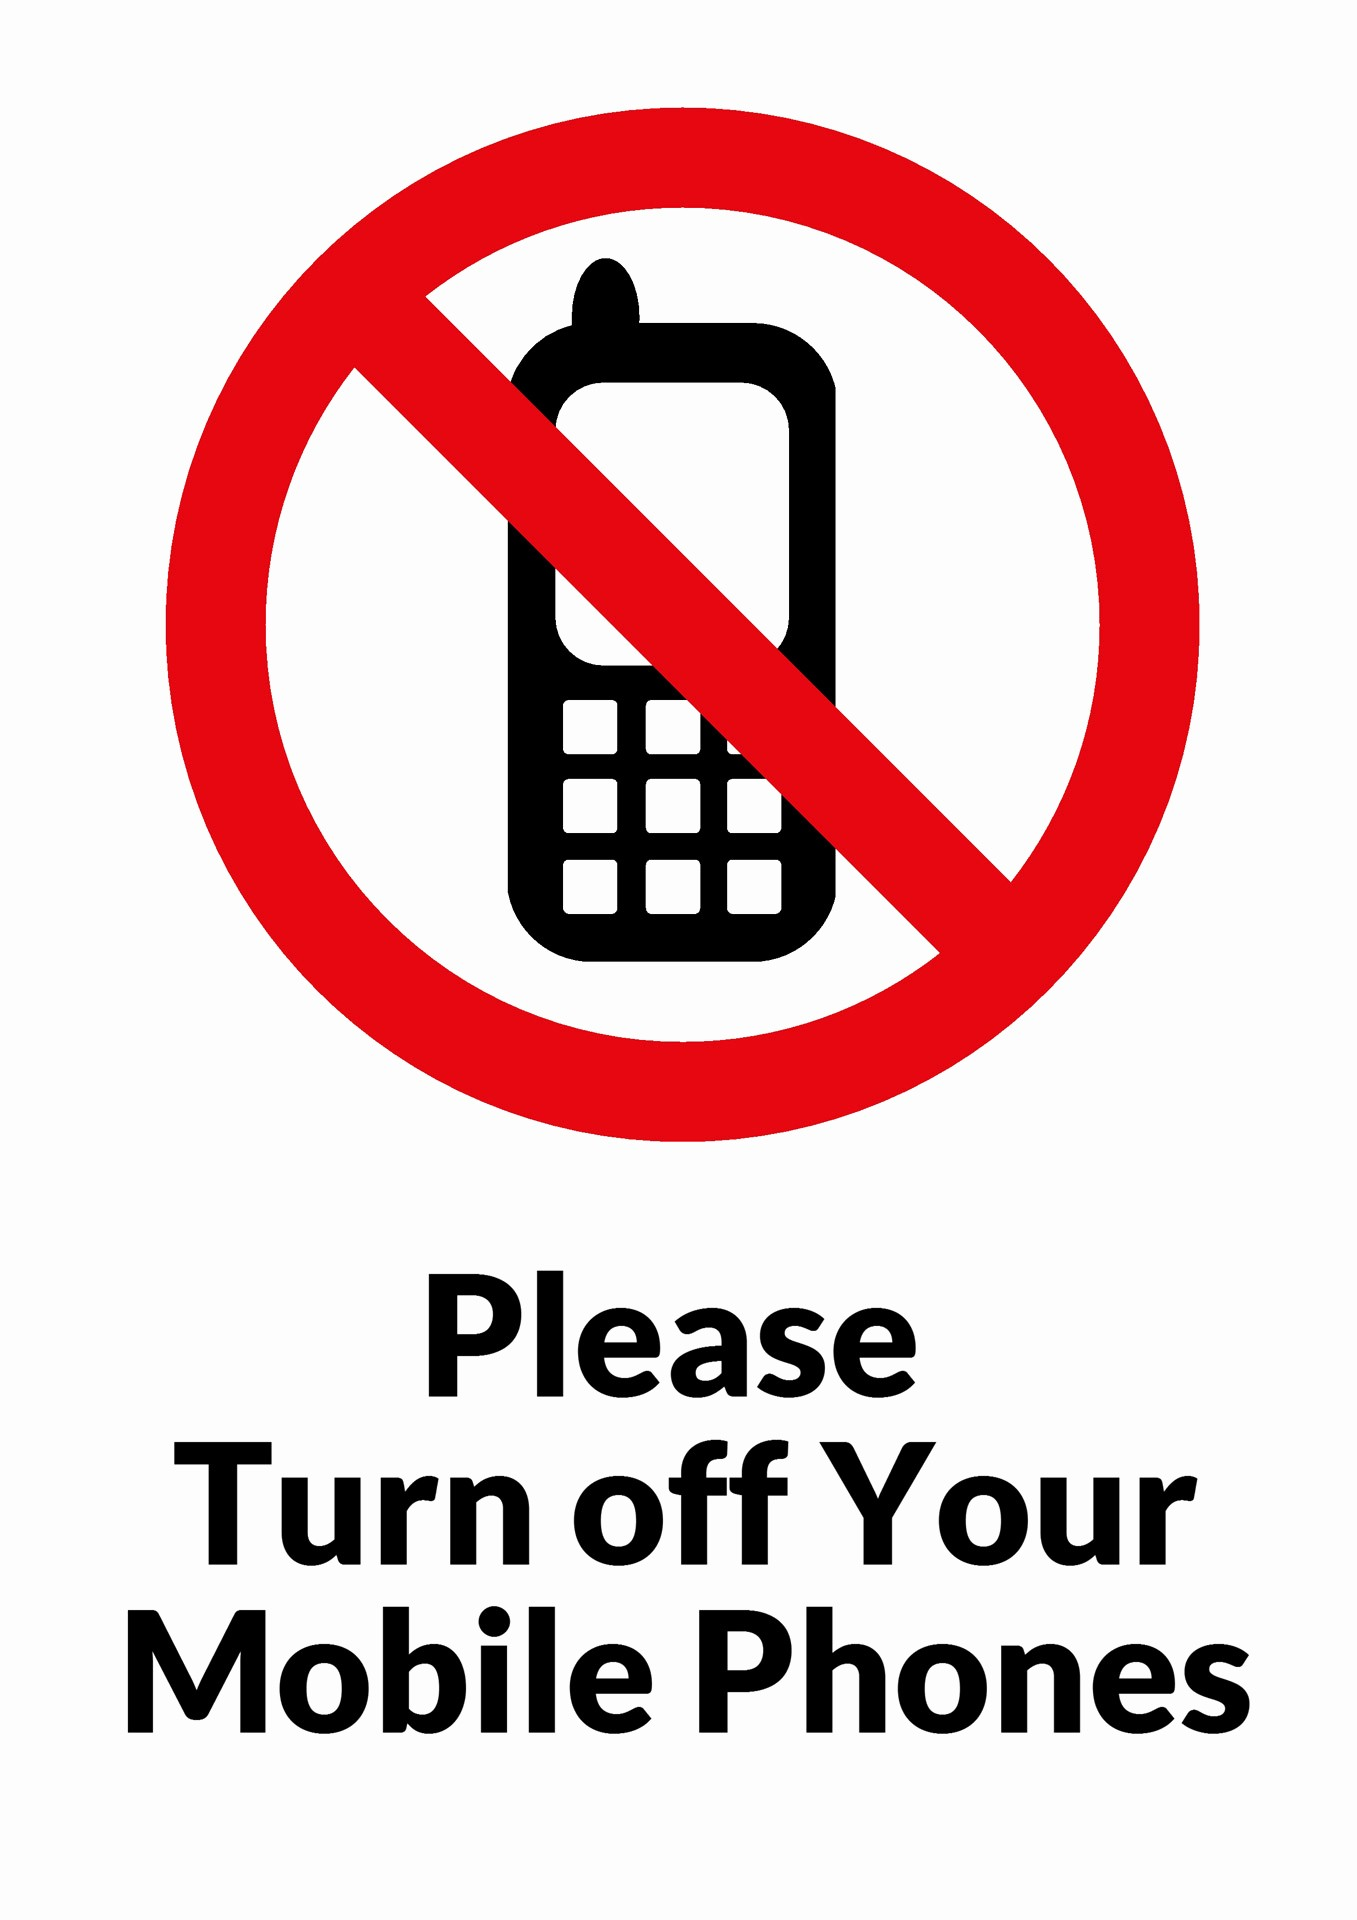 Turn Off Cell Phones Sign Best Of Please Turn F Your Mobile Phones Free Stock